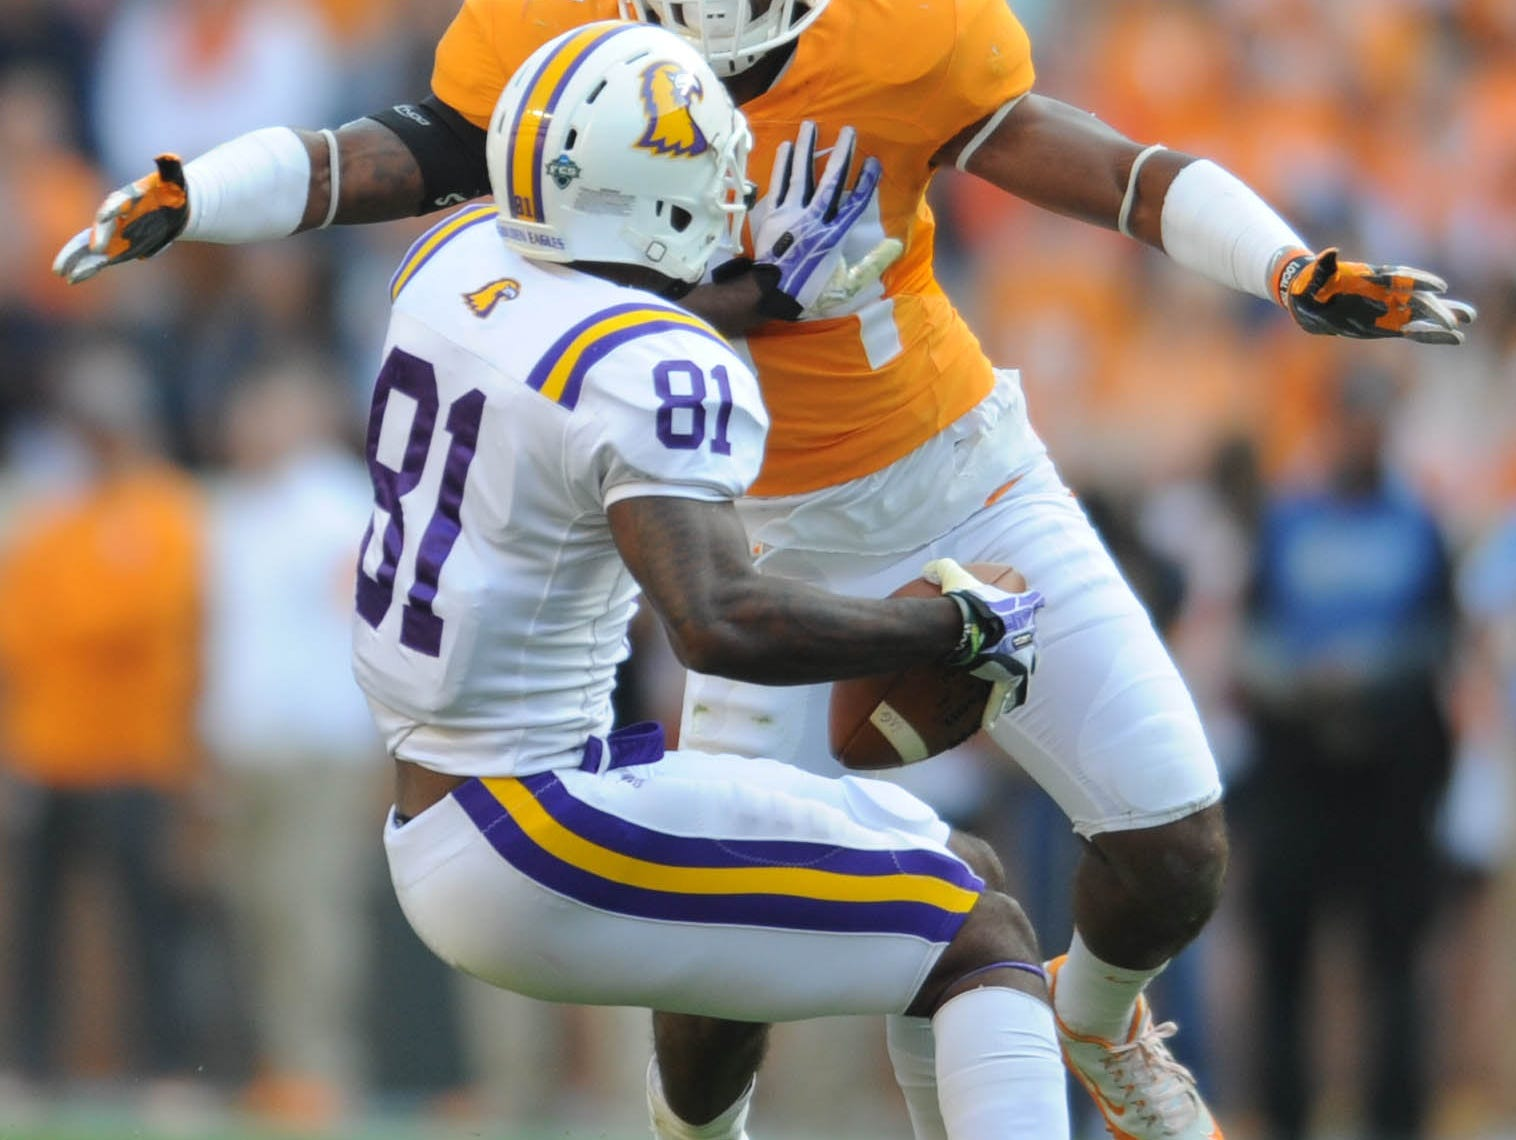 Tennessee linebacker Darrin Kirkland Jr. (34) stops Tennessee Tech wide receiver Austin Hicks (81) during the first half at Neyland Stadium on Saturday, Nov. 5, 2016.